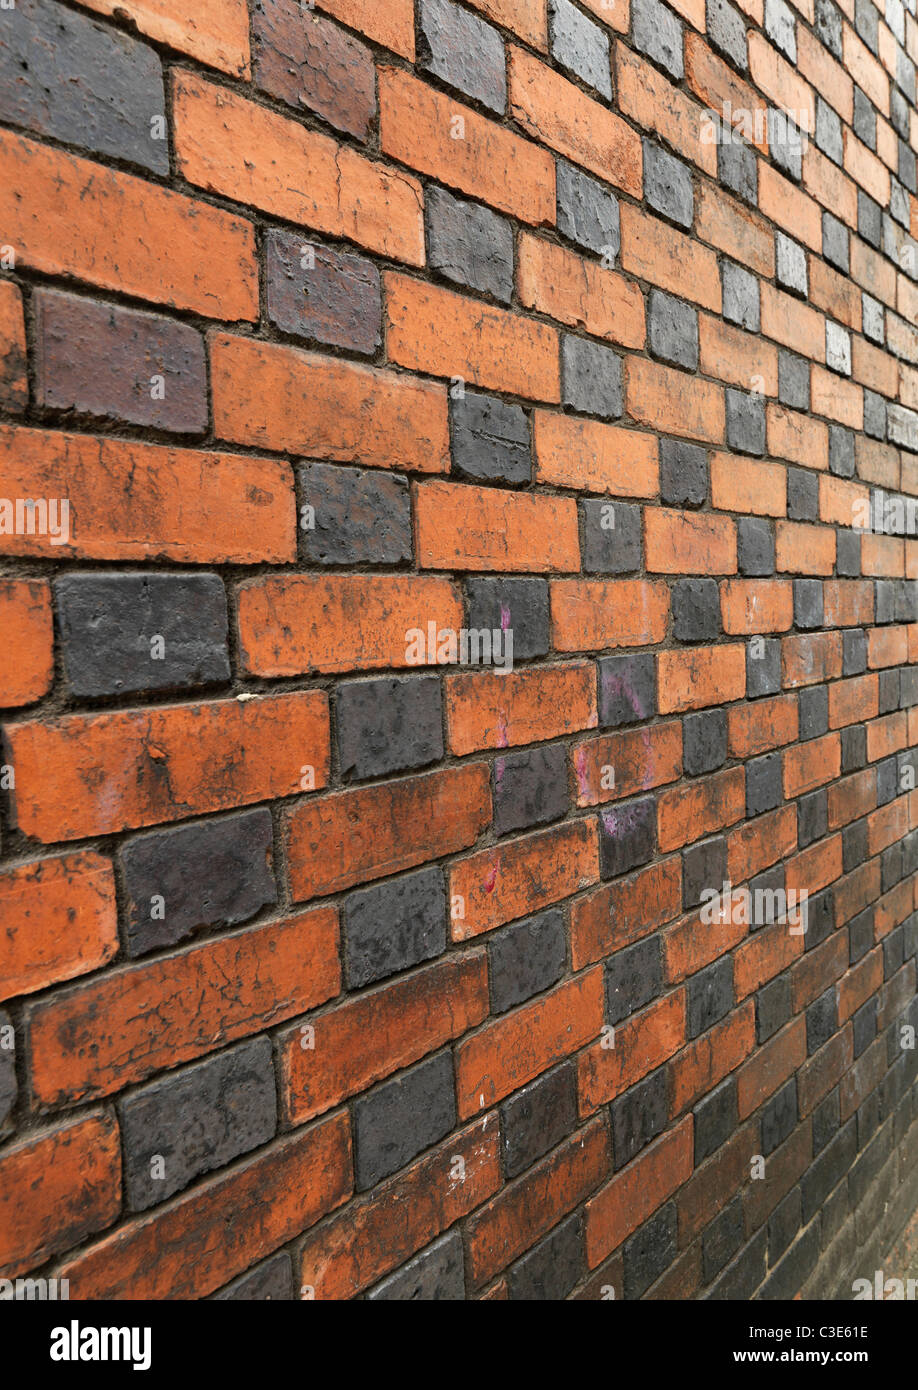 Black and red brick wall - Stock Image